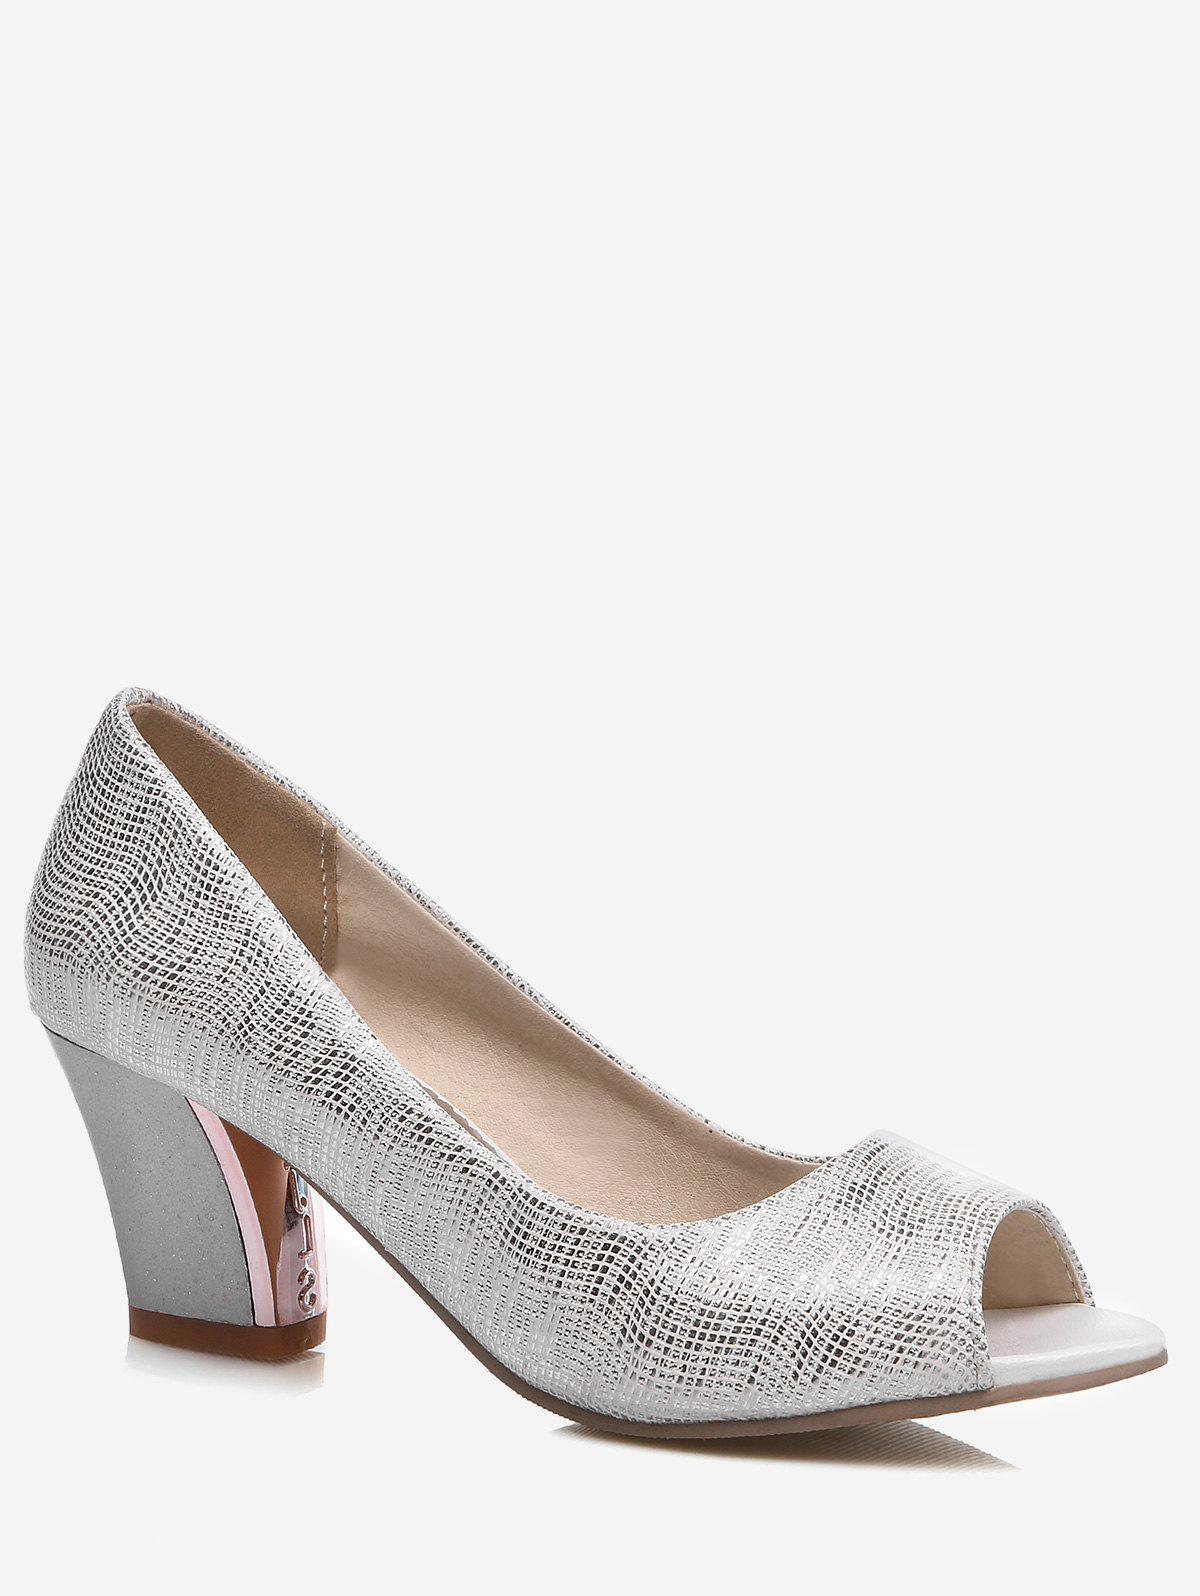 Store Plus Size Shimmer High Heel Pumps